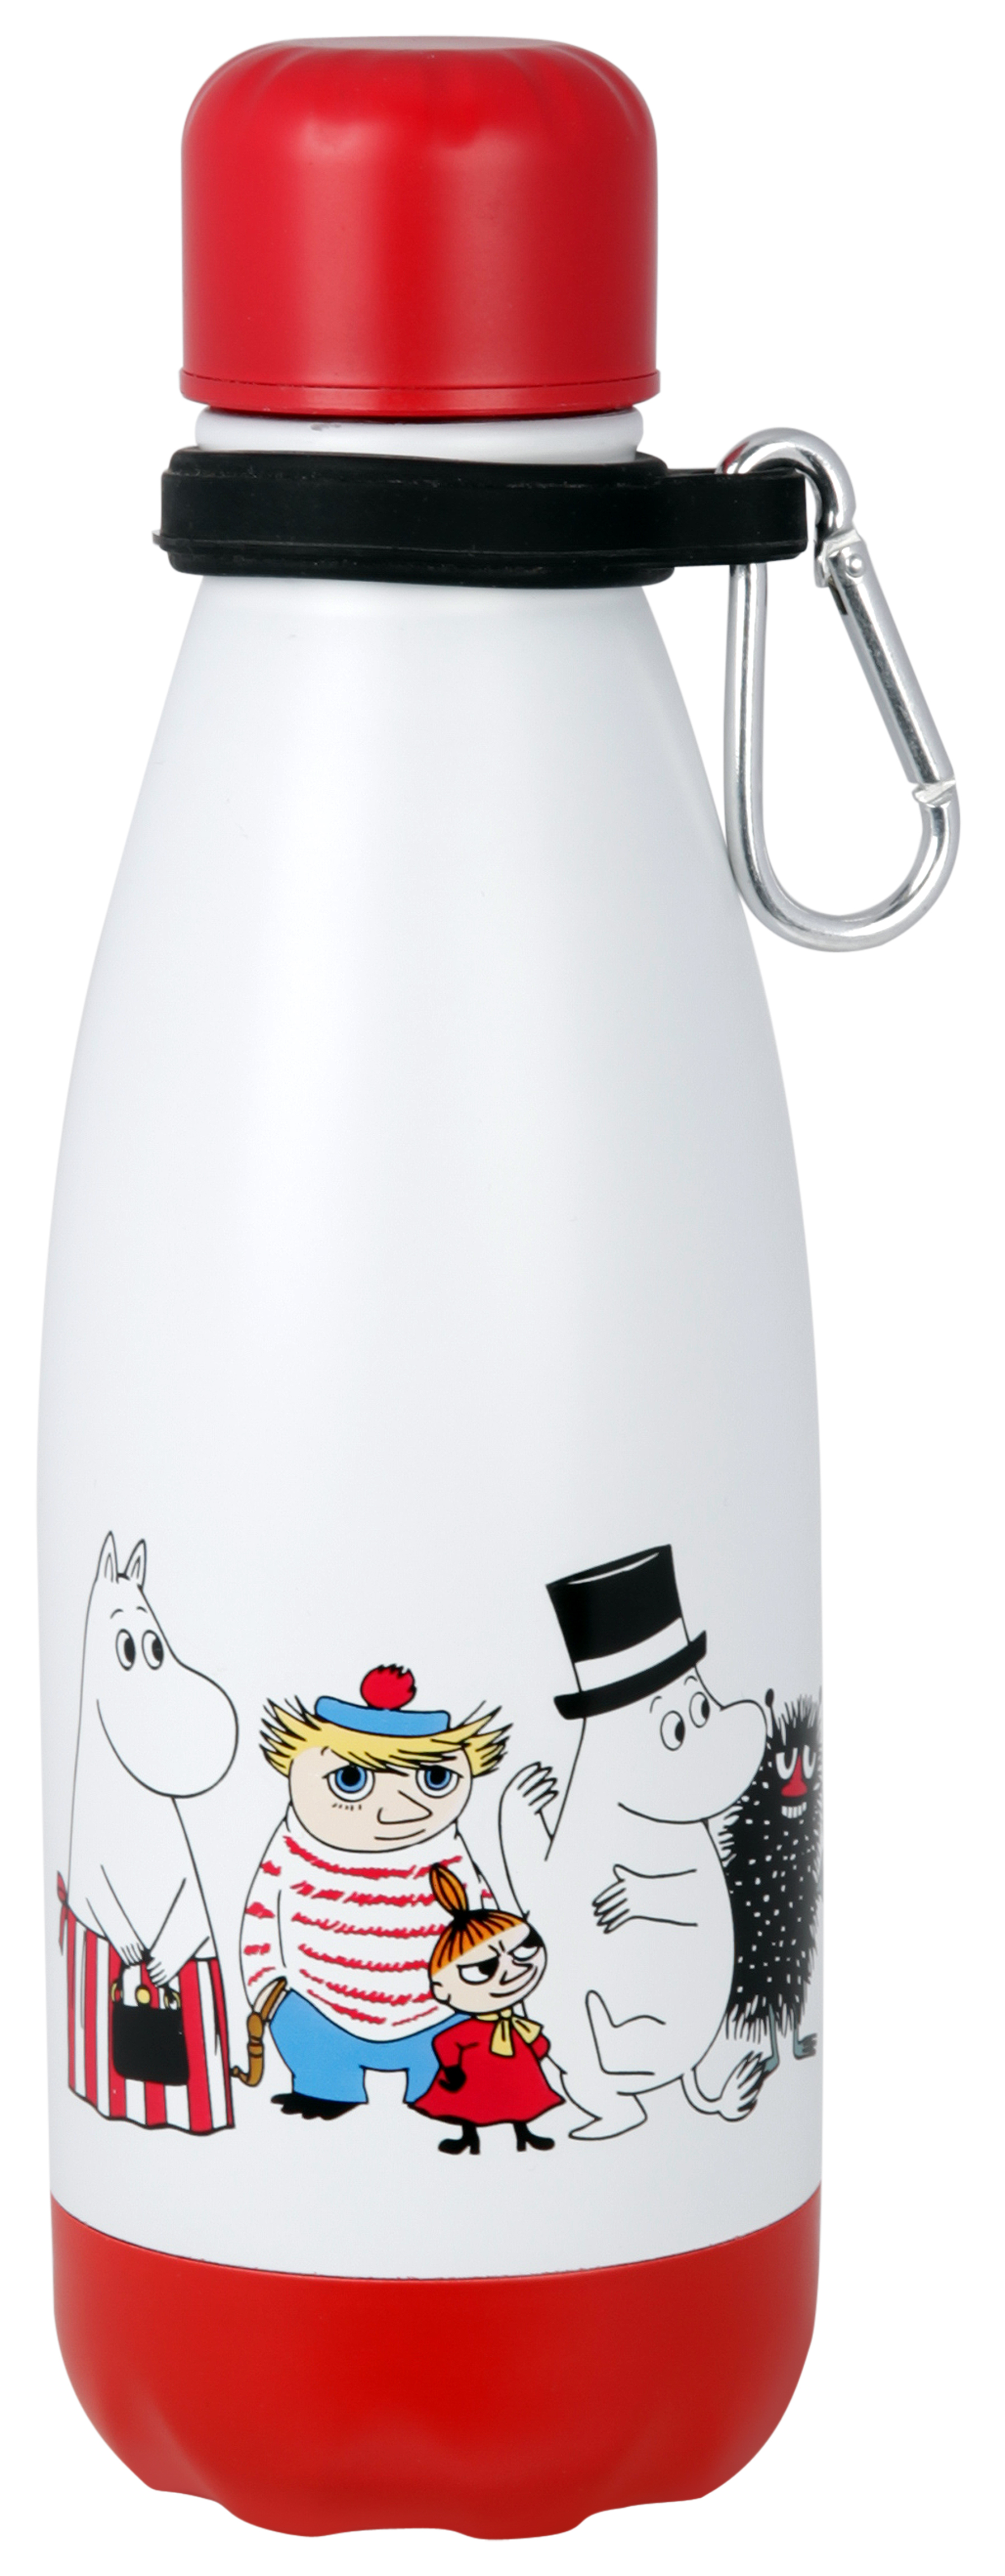 Martinex Moomin Characters Stainless Steel Bottle